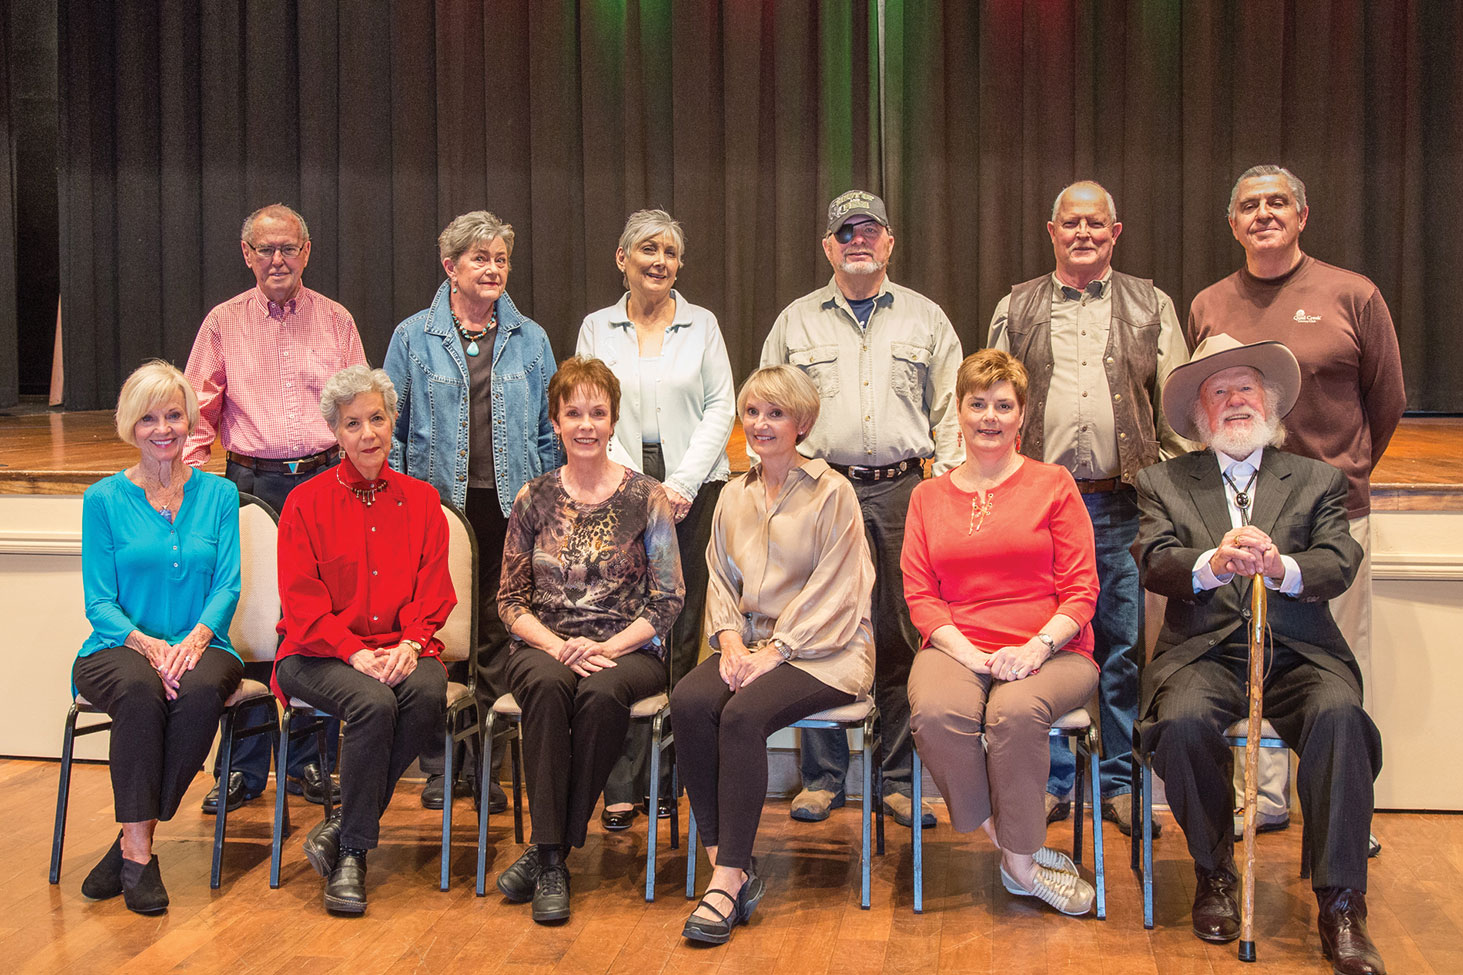 Seated (left to right): Sandy Boyer, Audrey Fatula, Dodie Prescott, Pam Campbell, Diana Paul, Jerry Smith. Standing: Frank Gunn (assistant director), Sandy Haegele, Nancy Gibbs, Ray Hebert, Andy Bailey, Davey Jones (director). Not pictured: Tim Jasperson; photo by Jeff Krueger